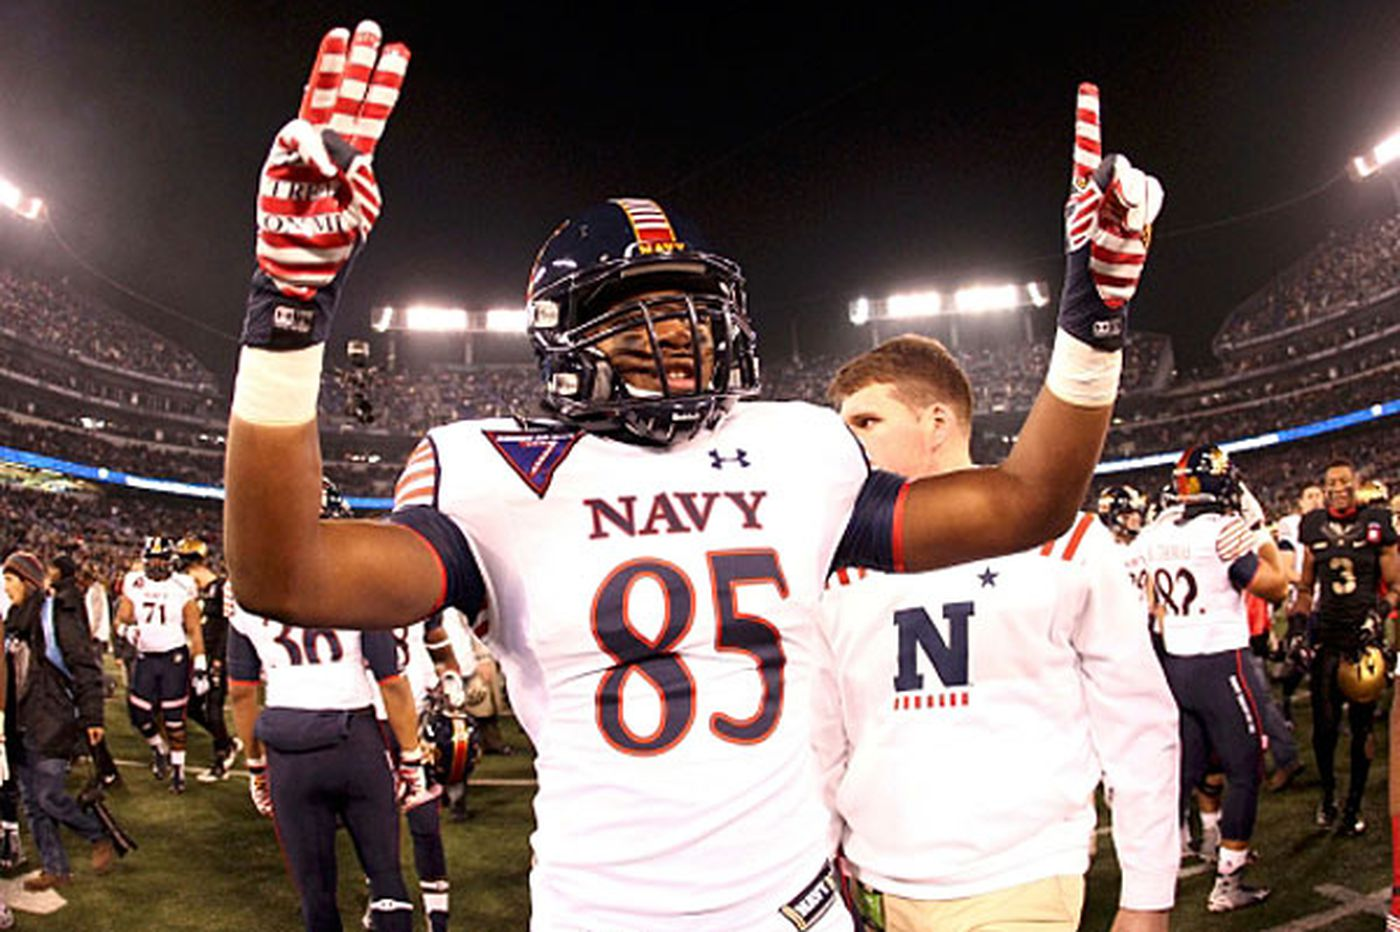 Navy tops Army for 13 straight year